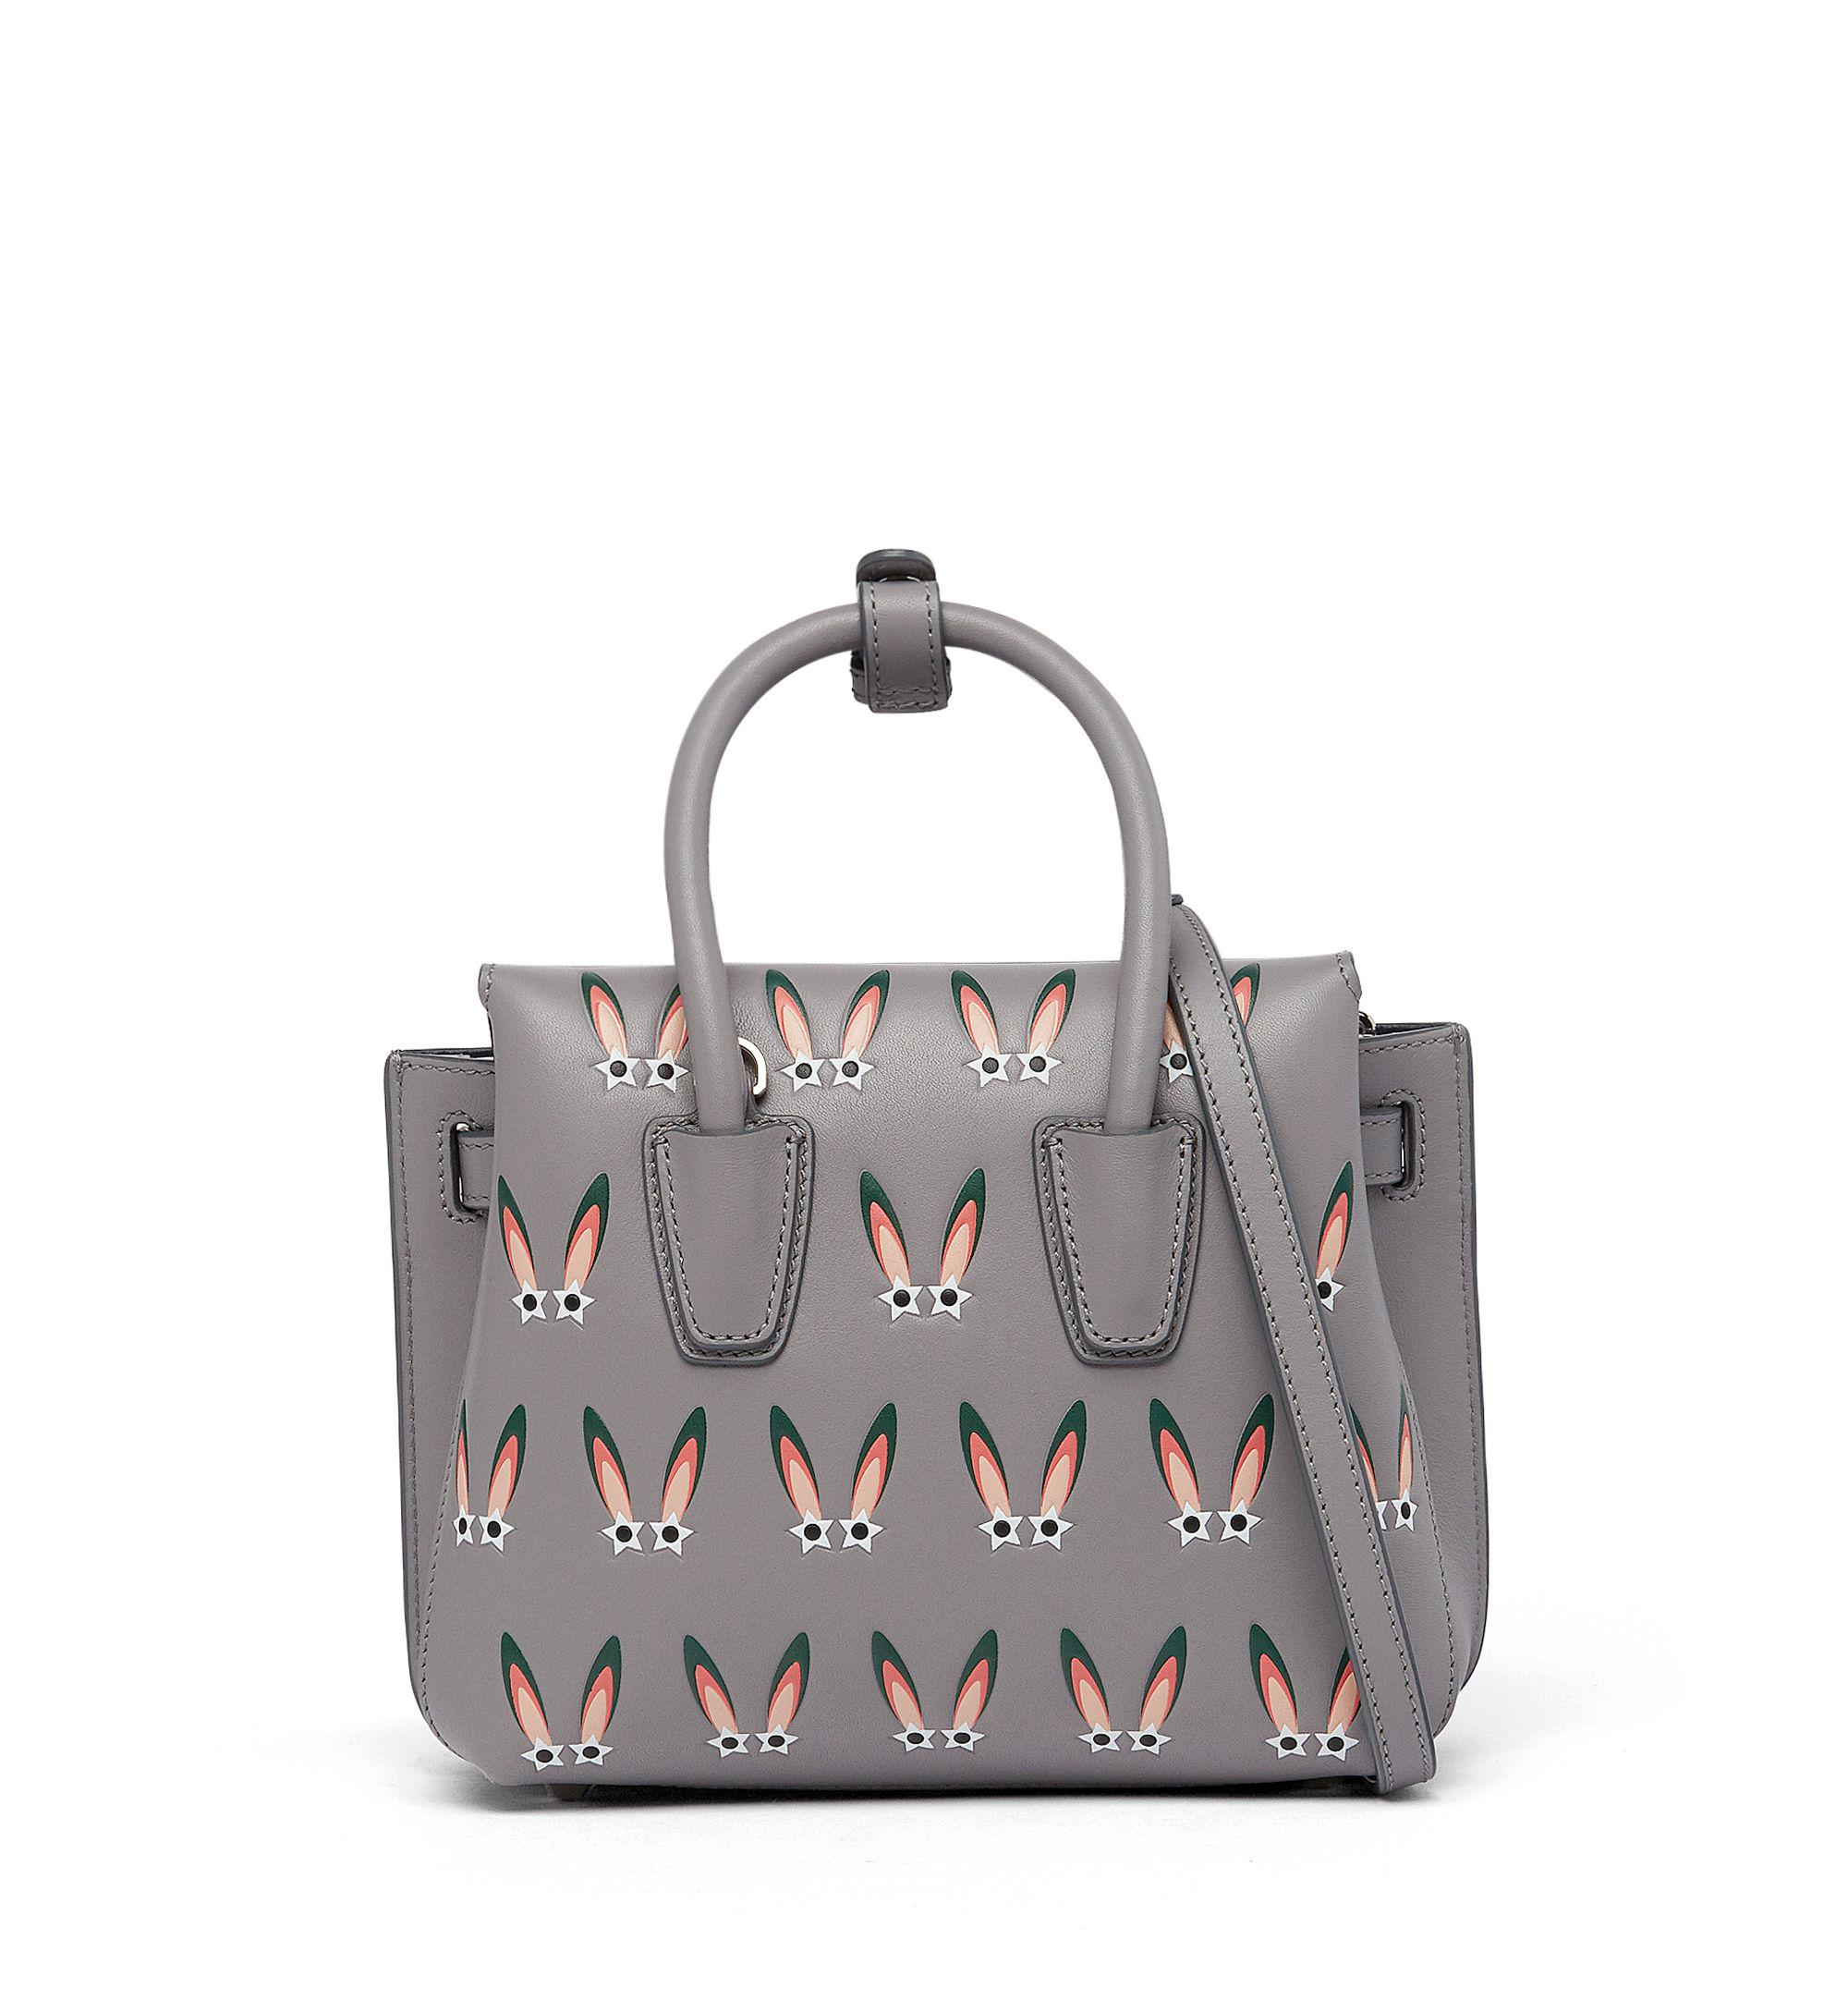 MCM Leather Milla Tote In Star Eyed Bunny Motif in Metallic